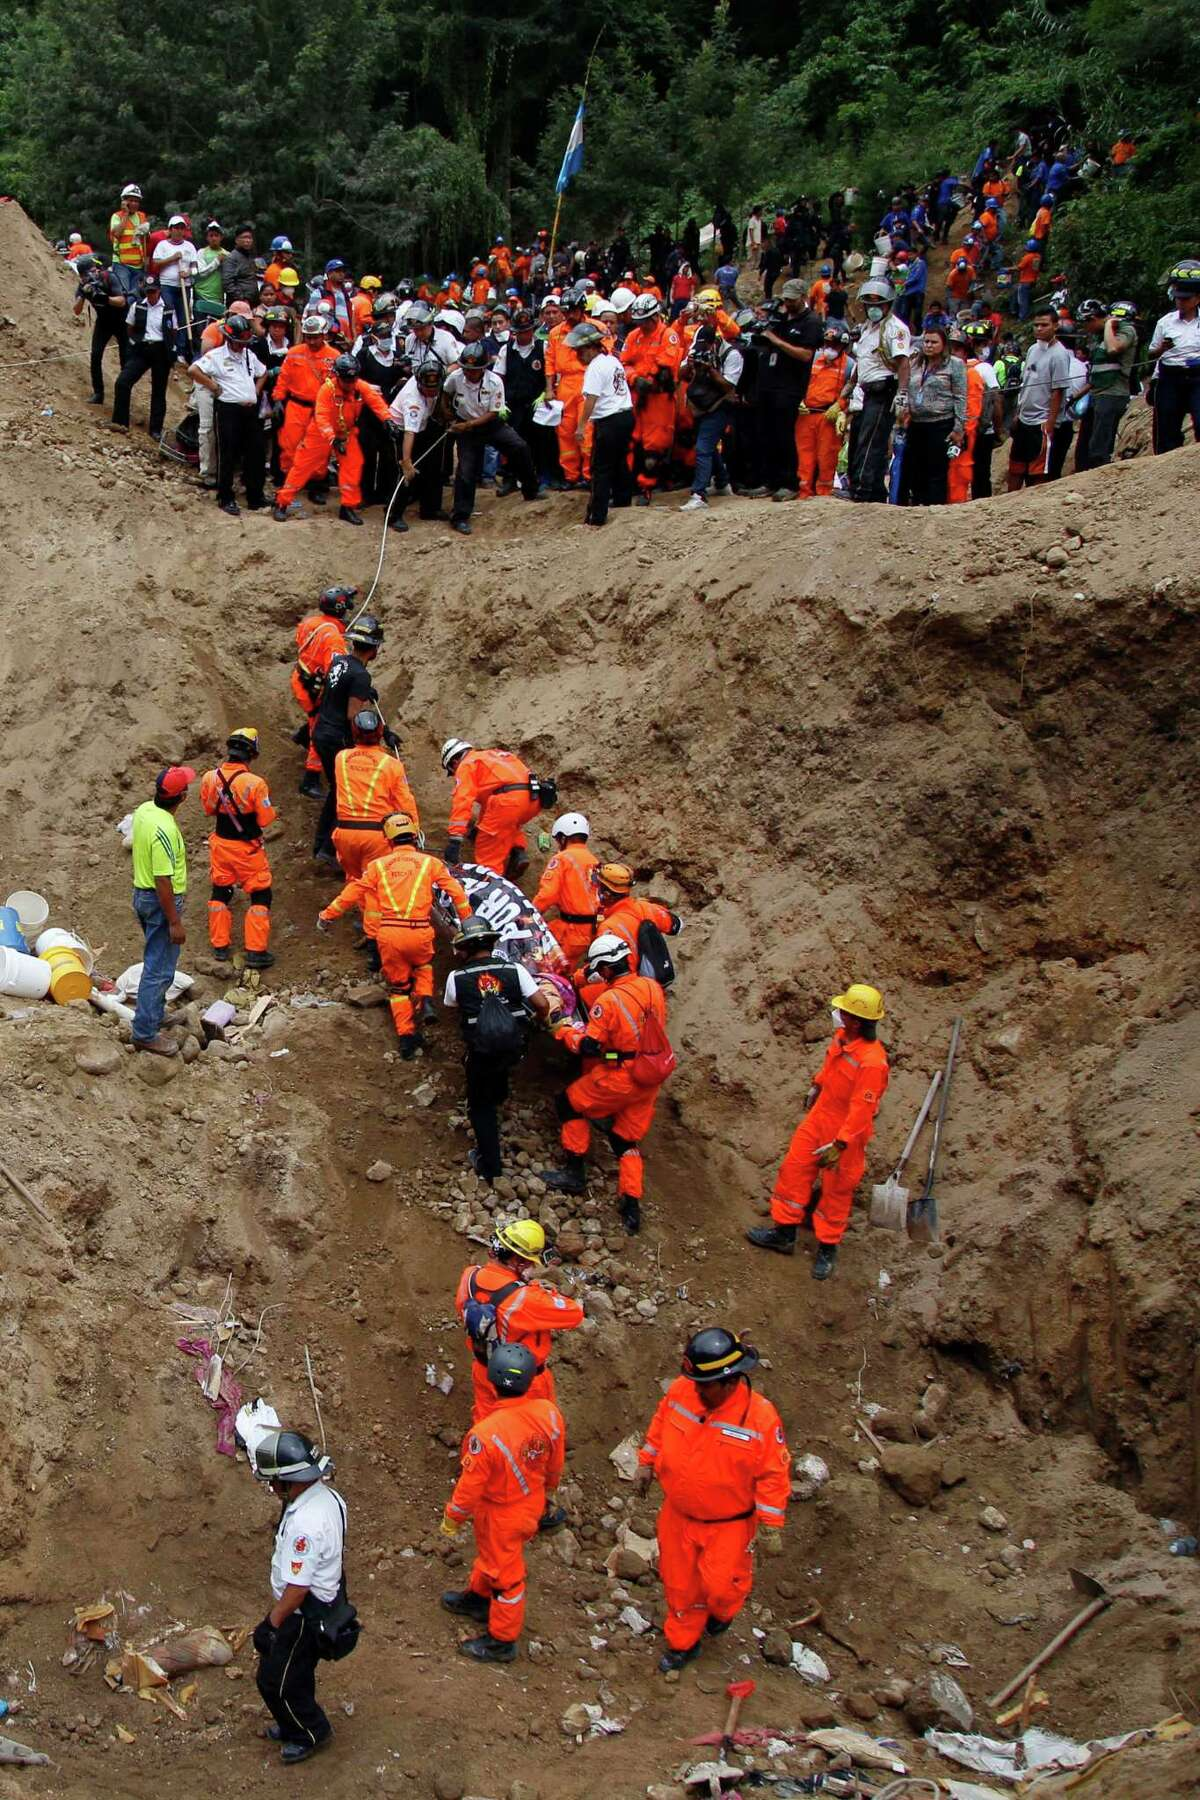 Firemen and rescue workers carry a body from the site of a mudslide in Cambray, a neighborhood in the suburb of Santa Catarina Pinula, on the outskirts of Guatemala City, Saturday, Oct. 3, 2015. Rescue workers recovered more bodies Saturday after a hillside collapsed on homes late Thursday, while more are feared still buried in the rubble. (AP Photo/Luis Soto)